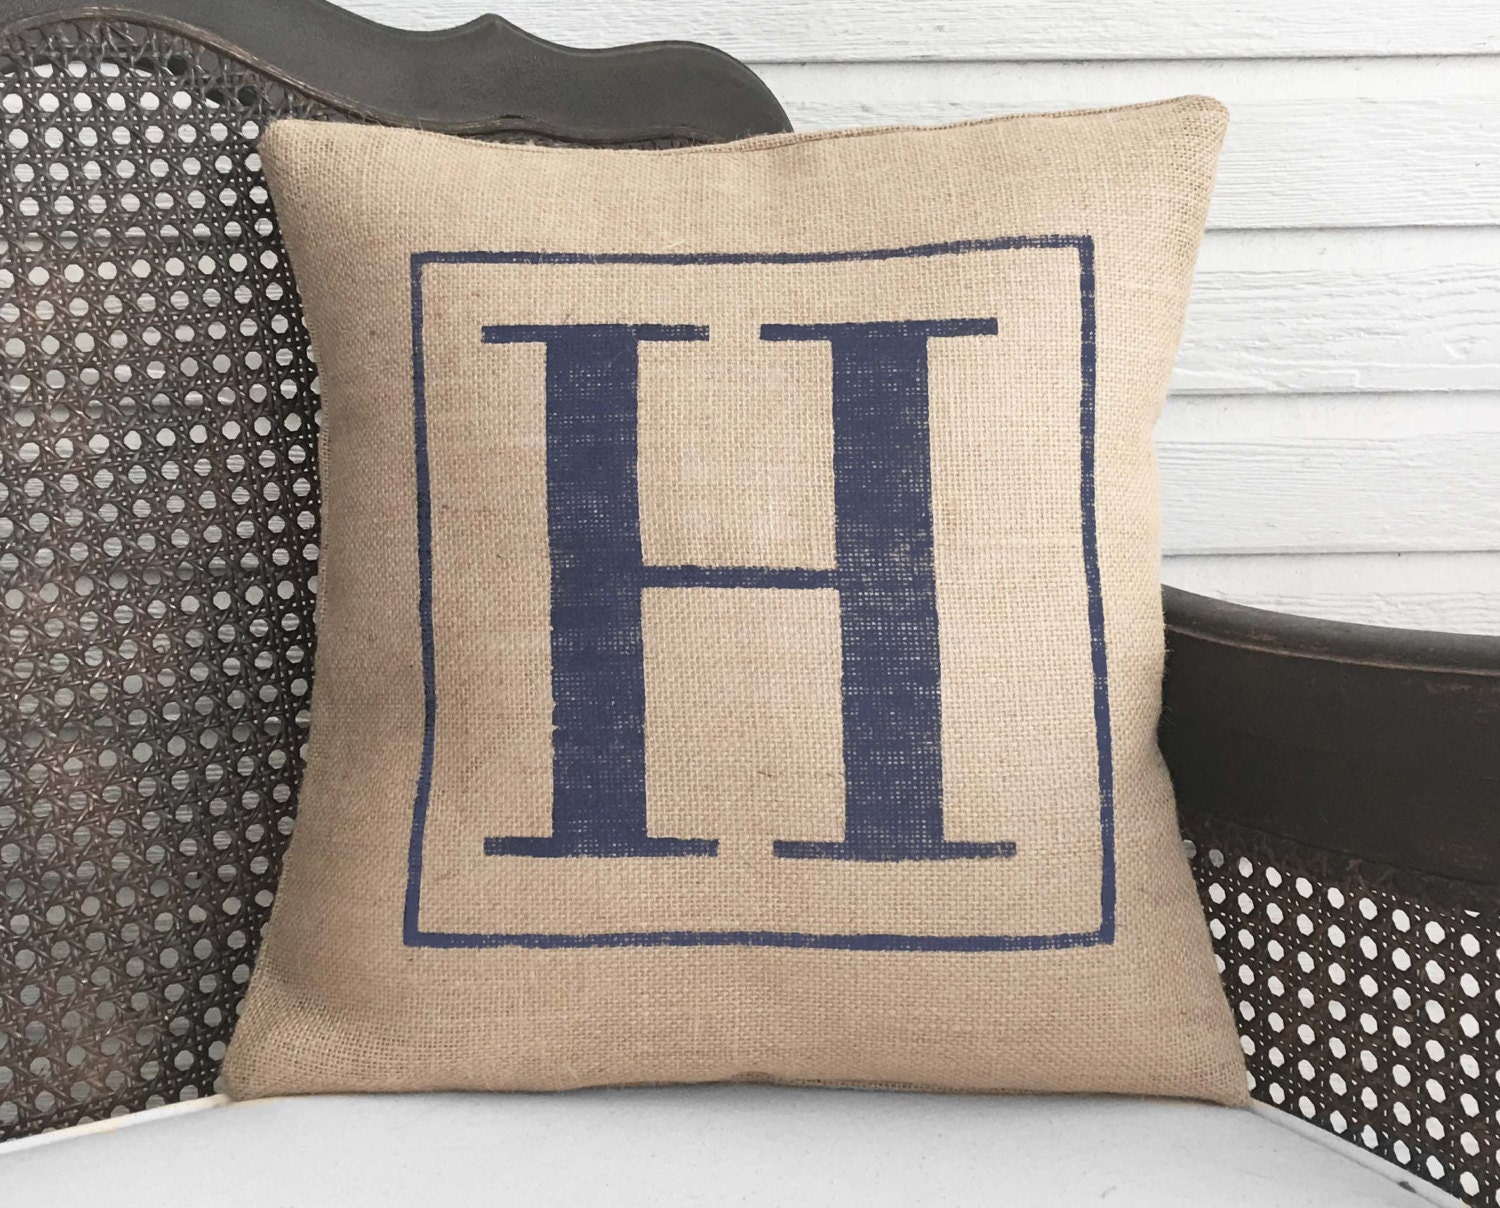 tap pillow expand soft hoswhosobupi burlap home to sweet